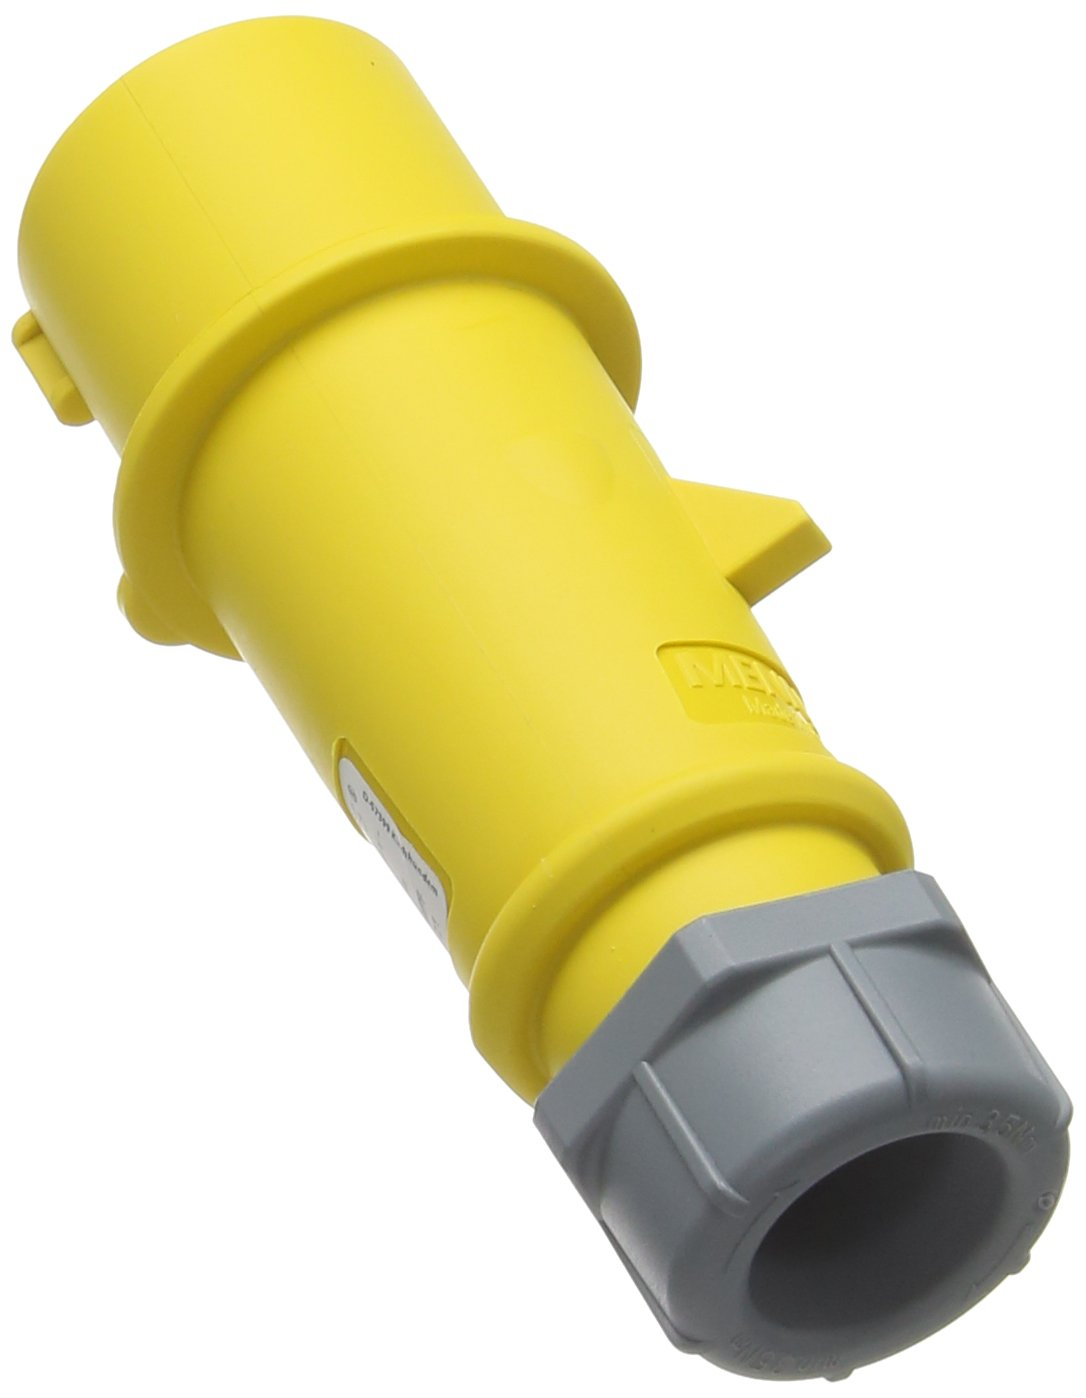 16 A Current Yellow MENNEKES 247 AMV-TOP Single Part Body Plug IP 44 Protection 3 Pole 4 hours Earth Position 110V